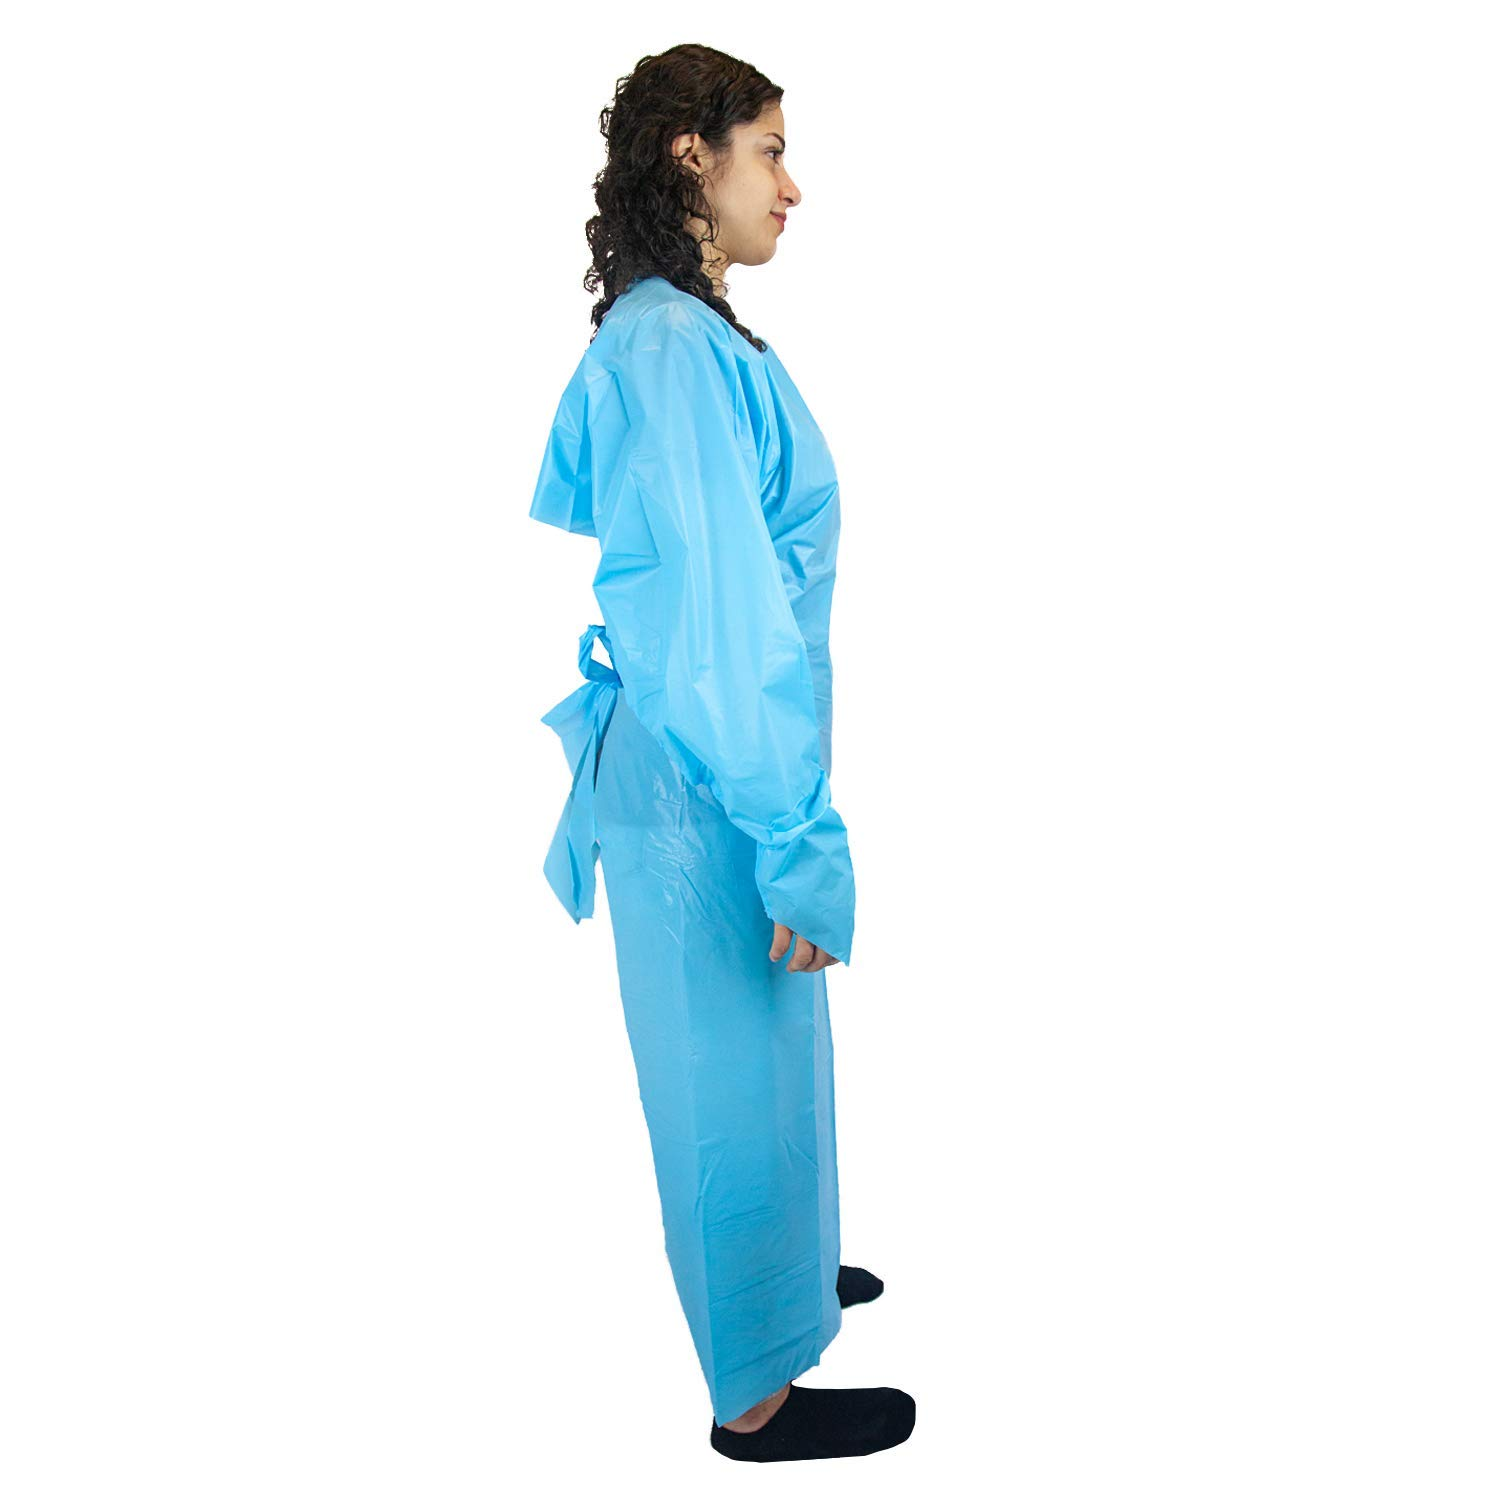 SAFE HANDLER Disposable Sleeve Gown | Open Back with Thumb Loops, 0.5 MIL, Blue, 100 Count by Safe Handler (Image #6)